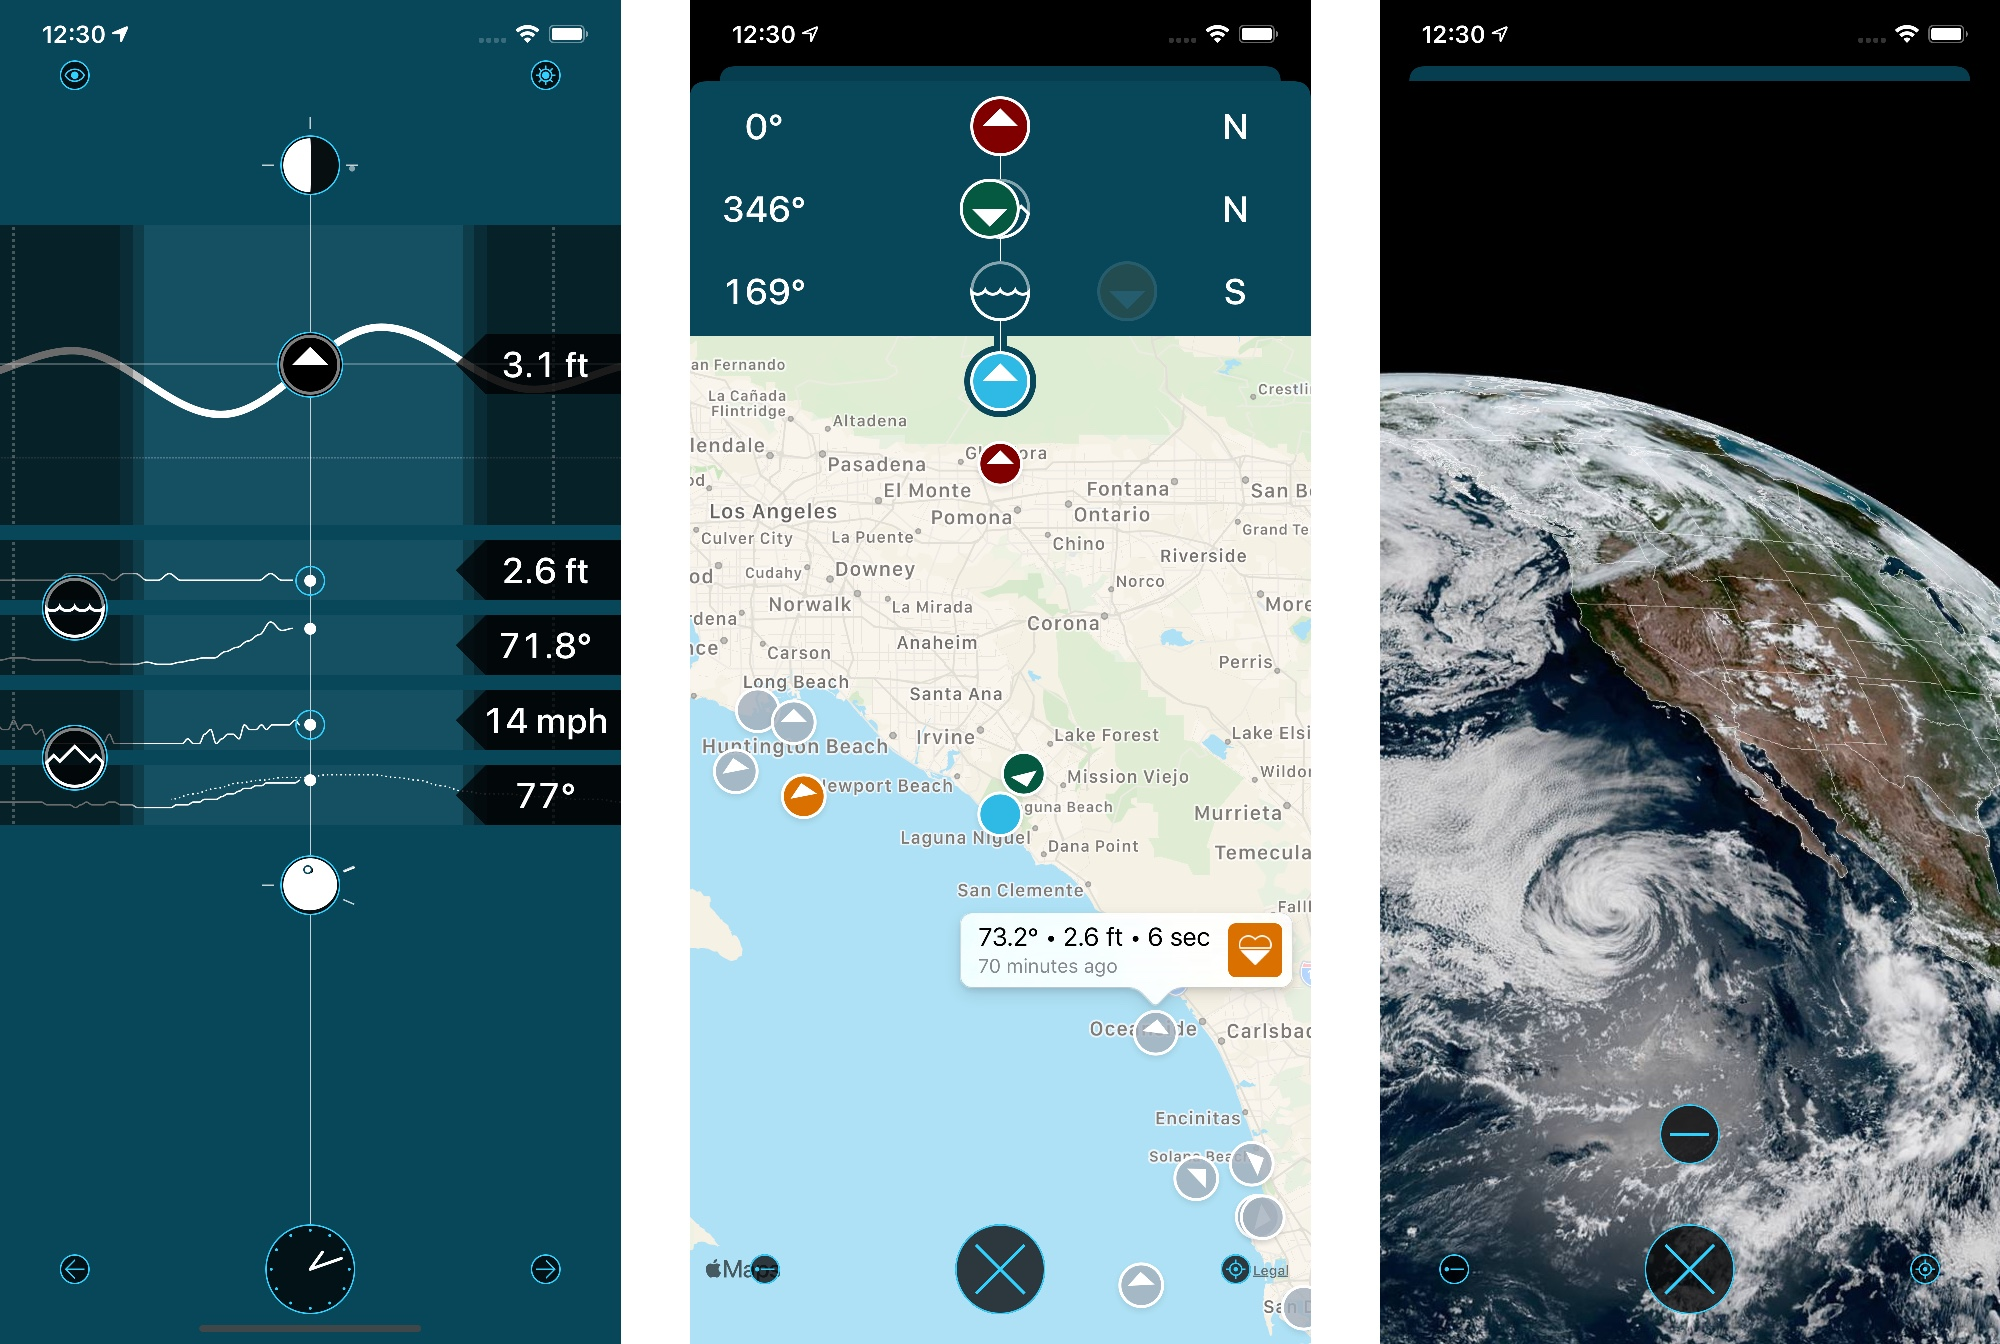 Screenshots of Waterscope showing the home screen graphs, a map view with sea and land weather conditions, and a satellite view of California.